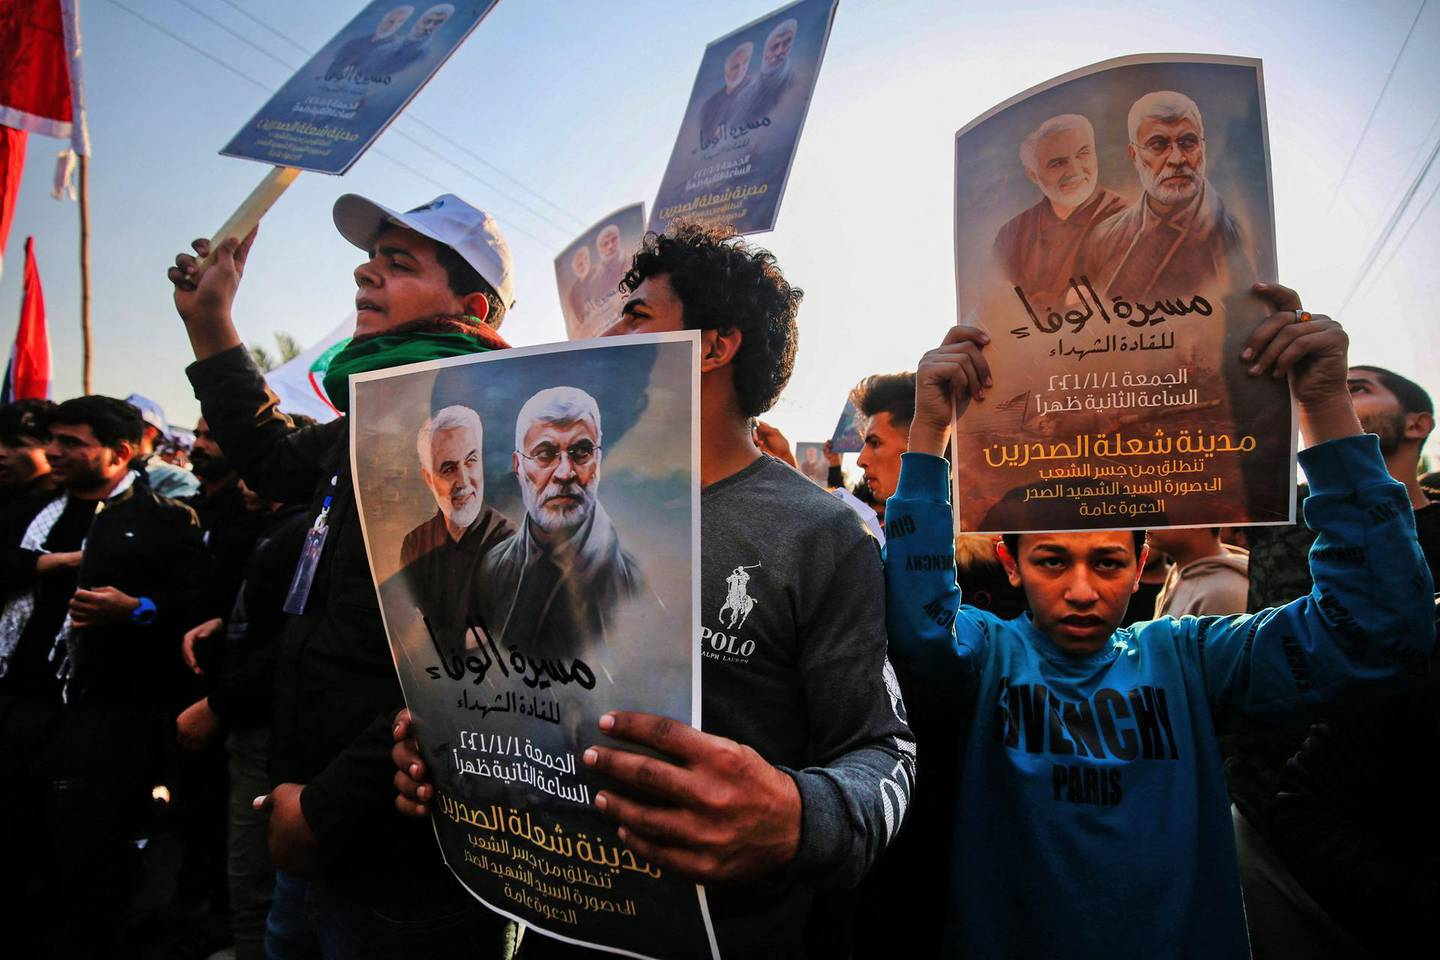 """(FILES) In this file photo taken on January 01, 2021 Iraqi supporters of the Hashed al-Shaabi paramilitary carry portraits of  Iraqi commander Abu Mahdi al-Muhandis and Iranian Revolutionary Guards commander Qasem Soleimani during a demonstration in Baghdad's western Shoala neighbourhood, demanding the expulsion of US forces from Iraq  At least 17 pro-Iran fighters were killed in US strikes in Syria at the Iraq border overnight, the Syrian Observatory for Human Rights said on February 26, 2021. """"The strikes destroyed three lorries carrying munitions... There were many casualties. Preliminary indications are that at least 17 fighters were killed, all members of Popular Mobilisation Forces,"""" the director of the SOHR, Rami Abdul Rahman, told AFP, referencing the powerful coalition of pro-Iran Iraqi paramilitaries.  / AFP / AHMAD AL-RUBAYE"""